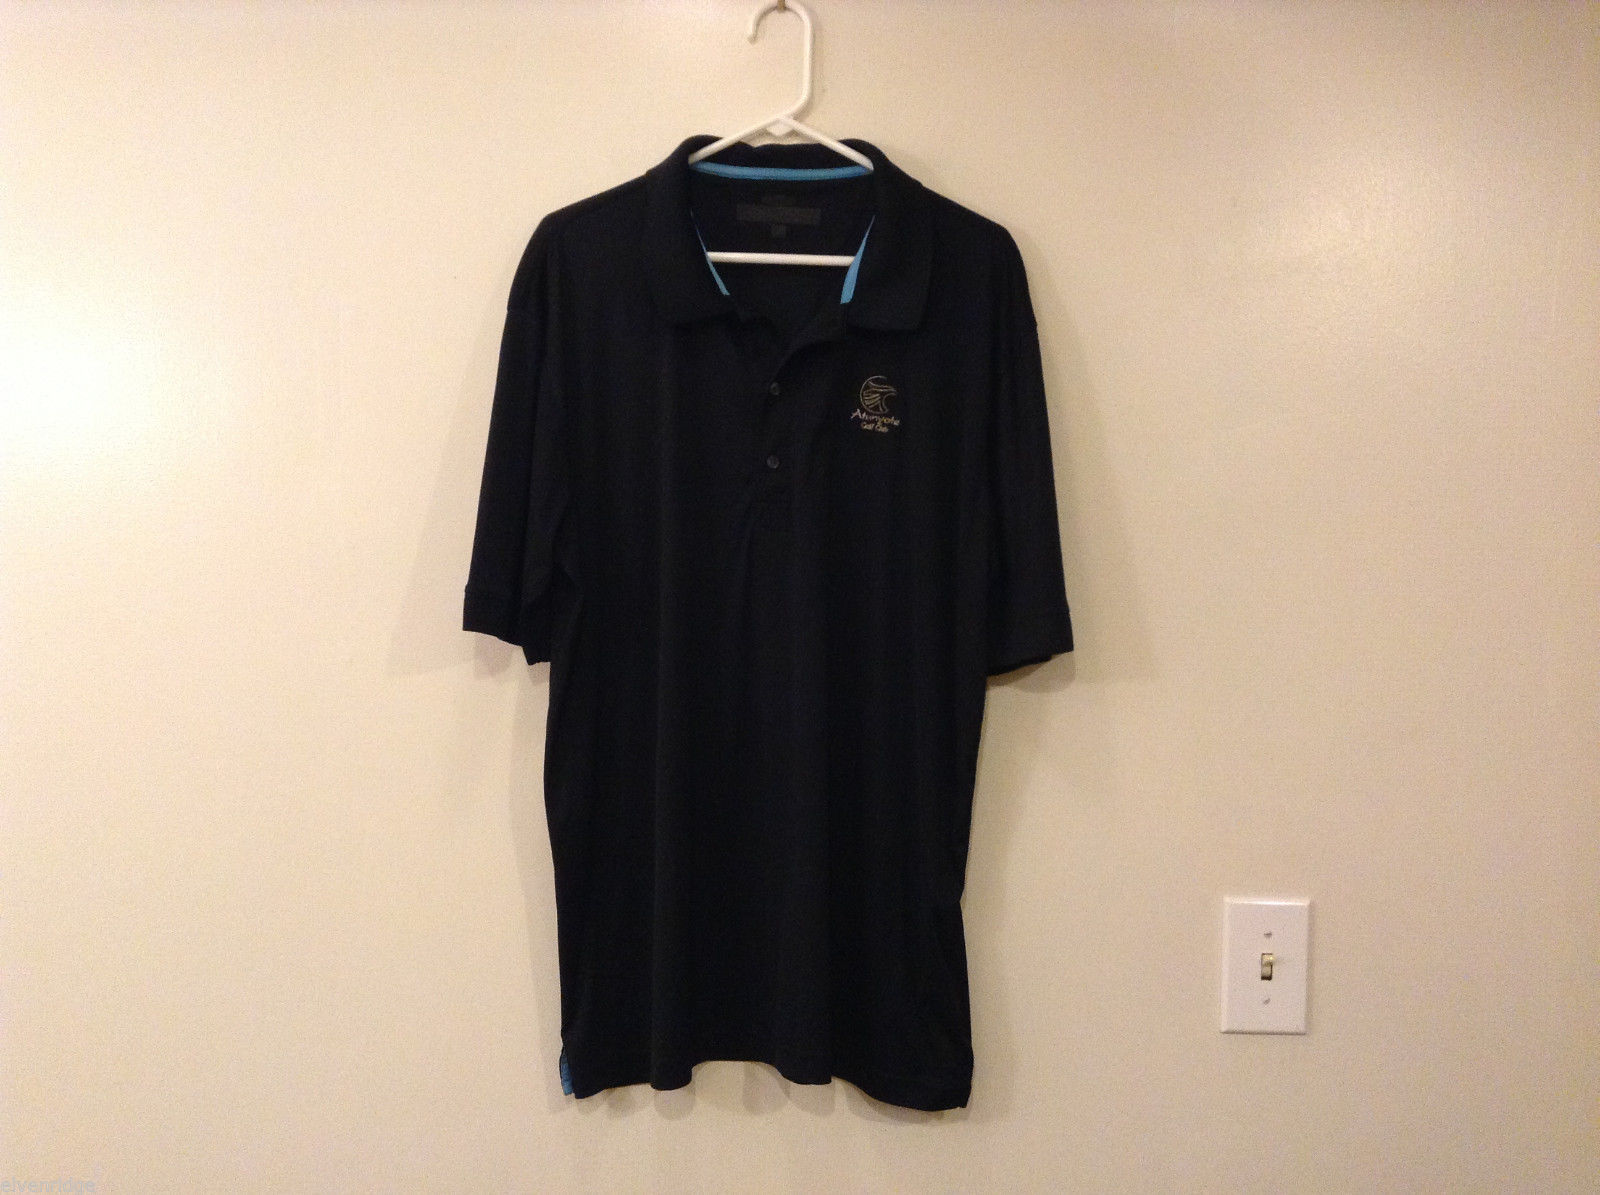 Mens Greg Norman Black Golf Polo style Microfiber Polyester T-shirt, size XL